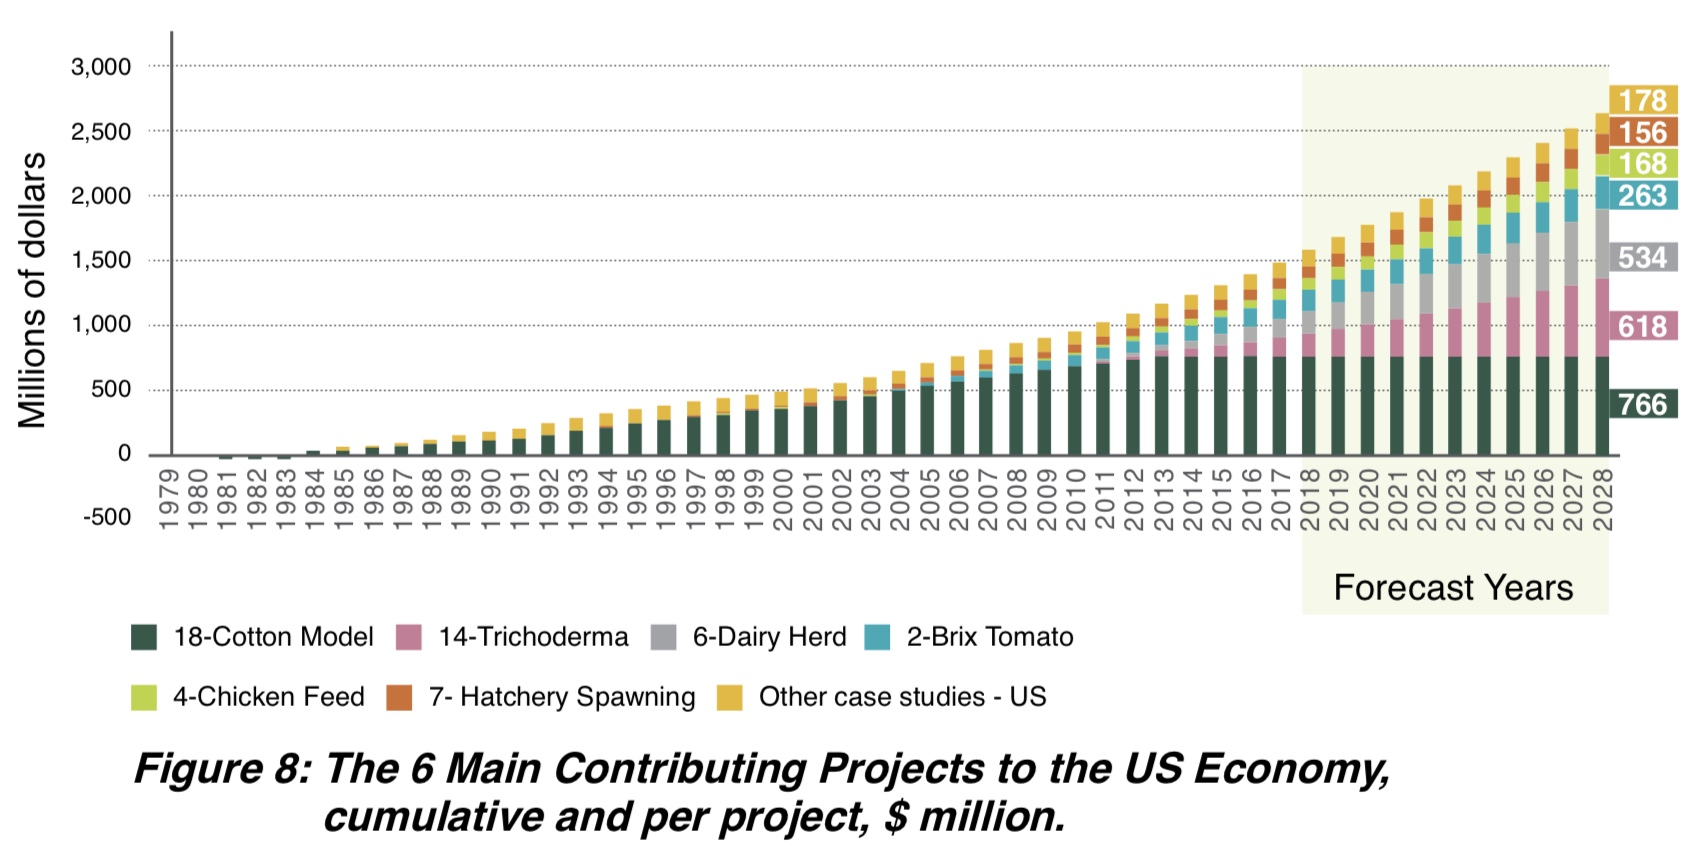 Figure 8: The 6 Main Contributing Projects to the US Economy, accumulated $ million